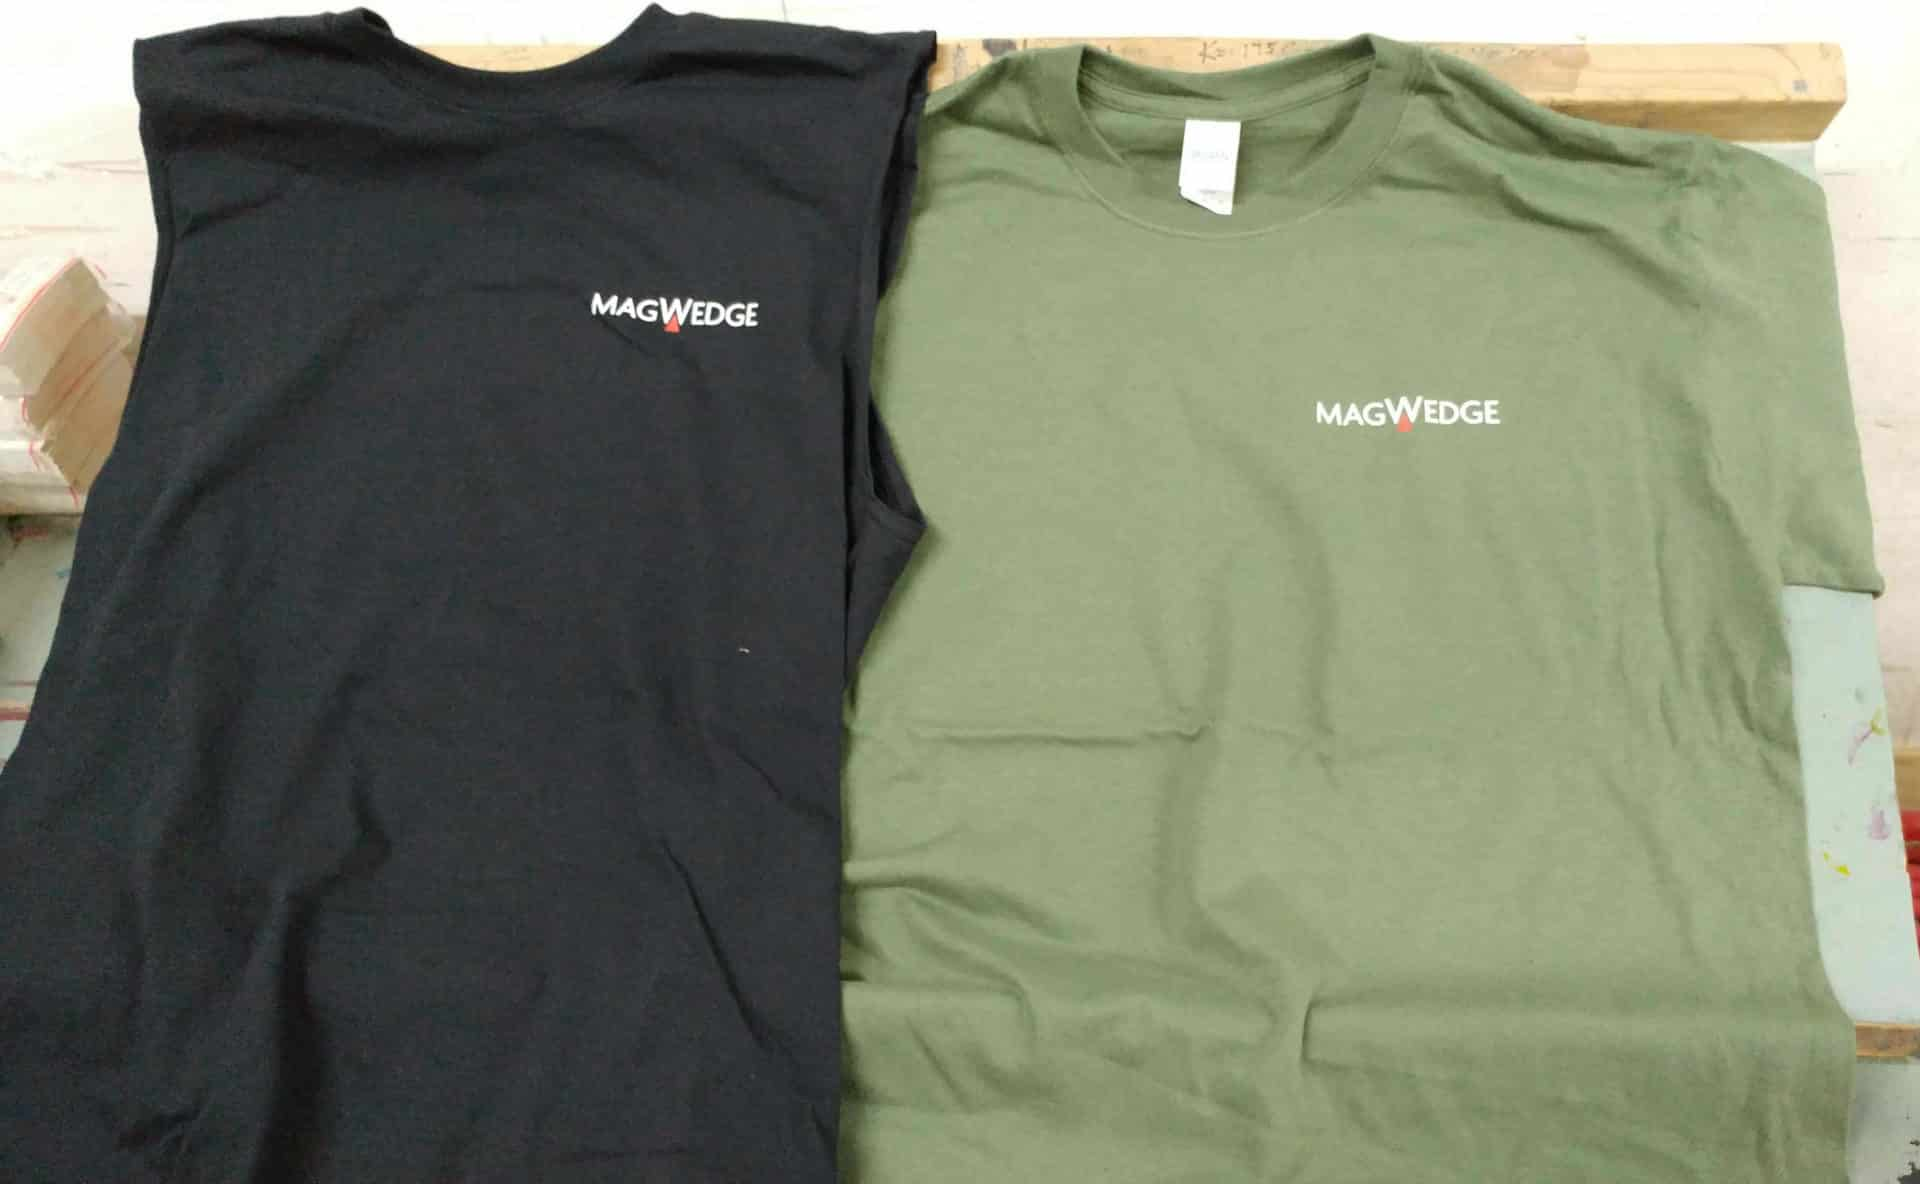 Magwedge Apparel